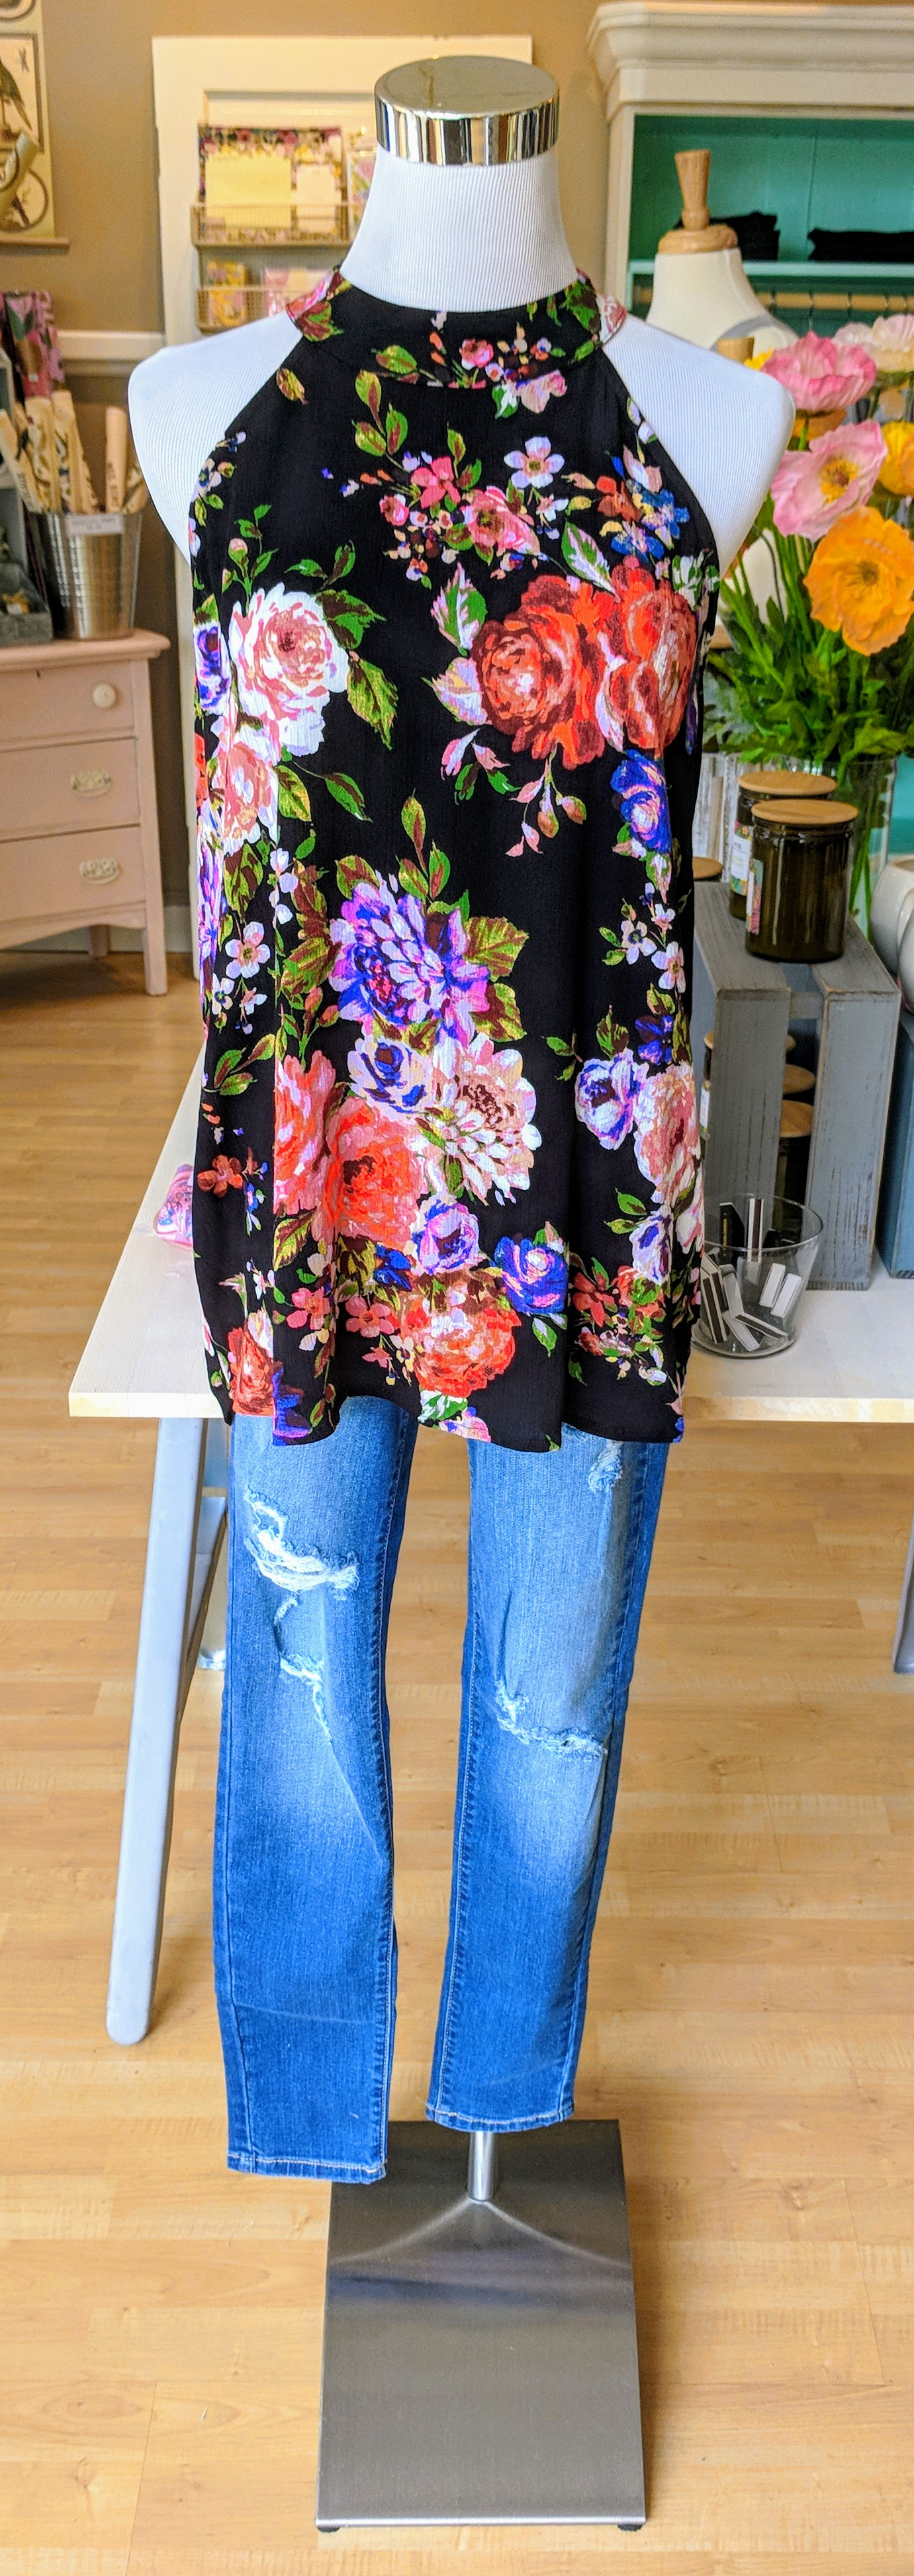 Black floral high low hem tunic with key hole detail on back.